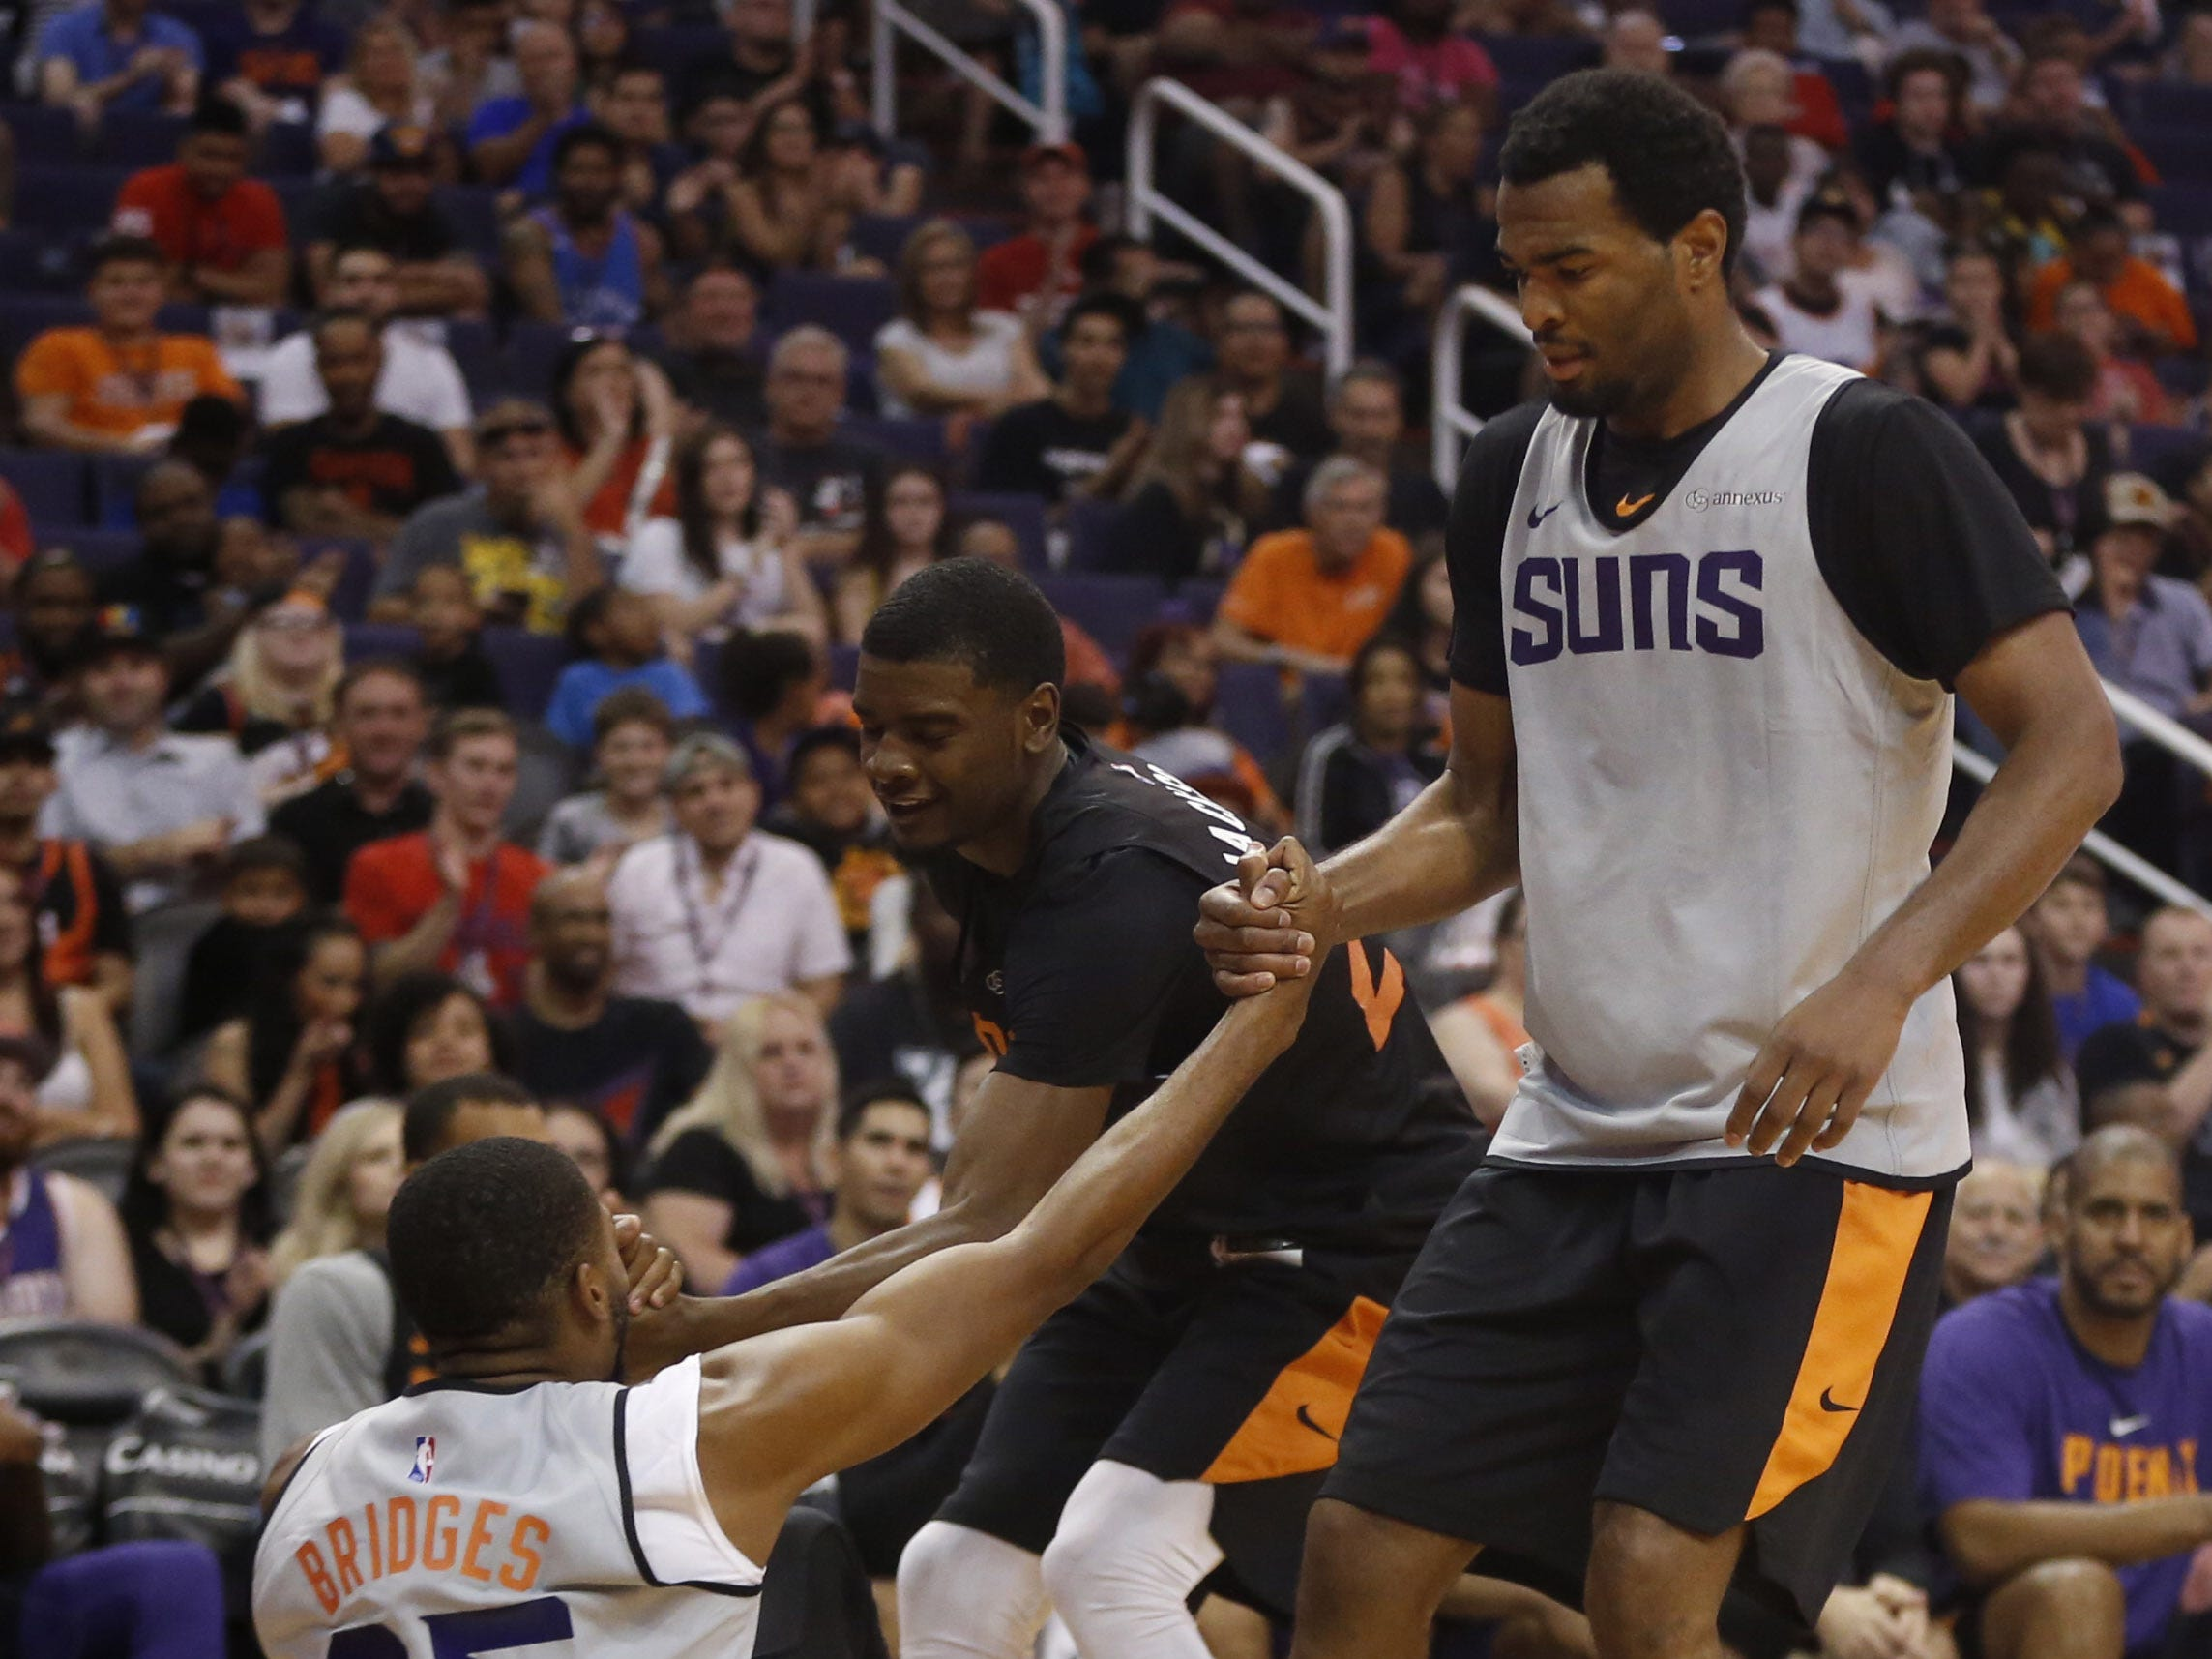 Suns TJ Warren and Josh Jackson pick up teammate Mikal Bridges during an Open Practice at Talking Stick Resort Arena in Phoenix, Ariz. on Sept. 29, 2018.